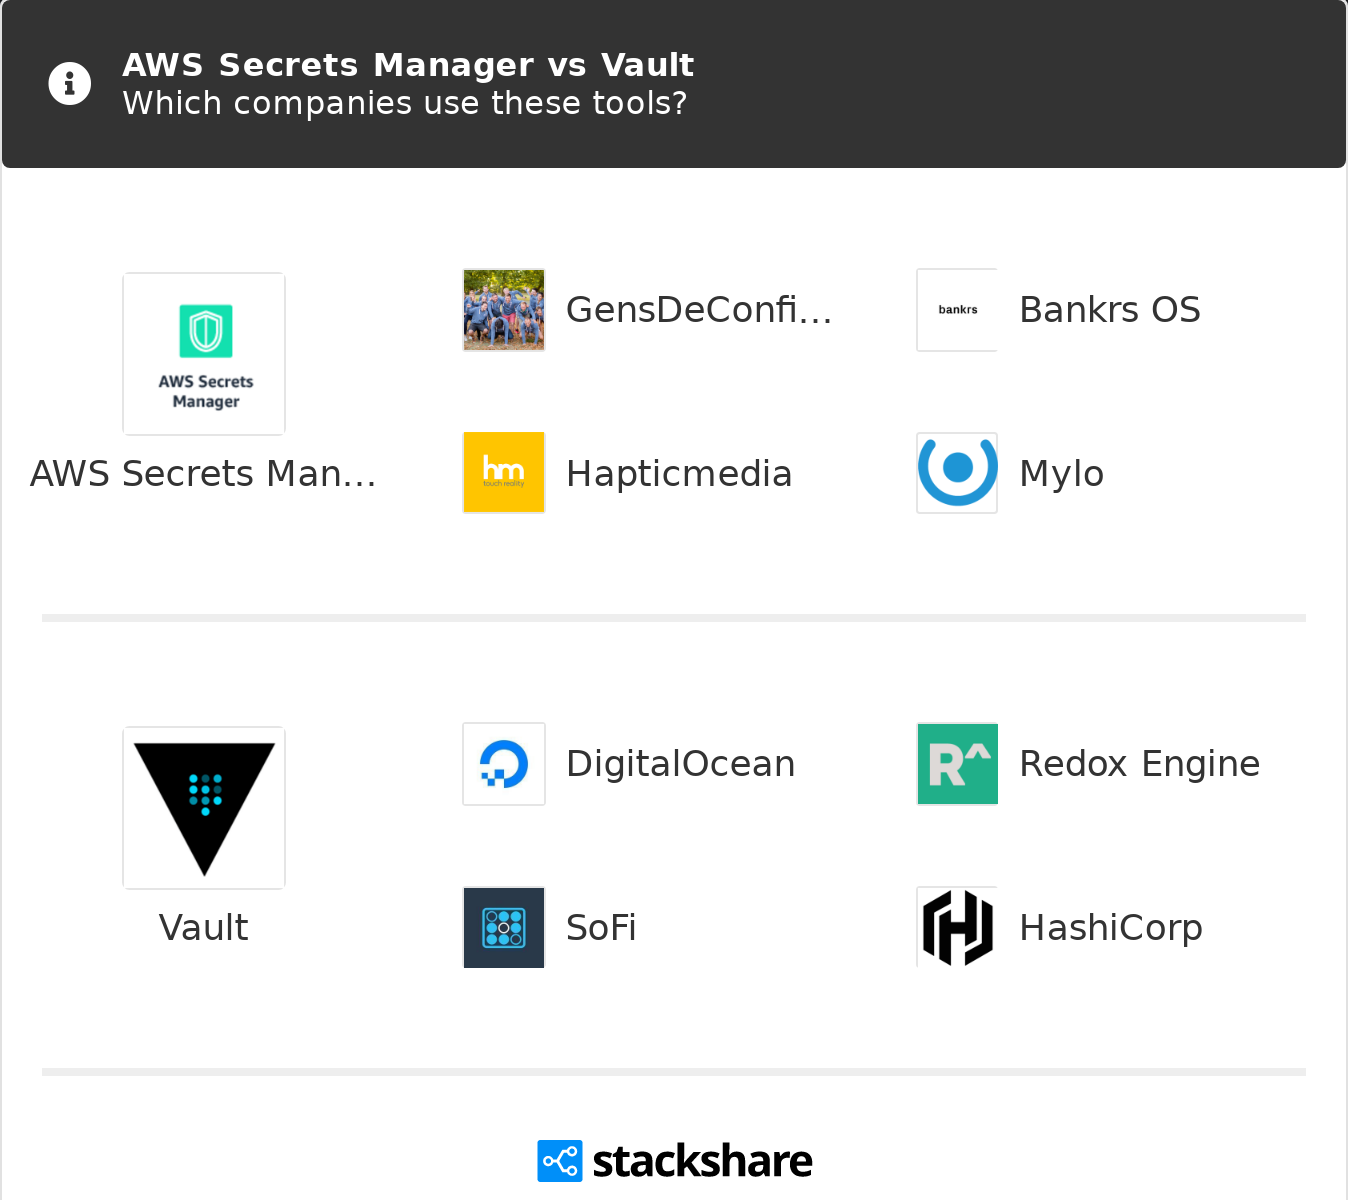 AWS Secrets Manager vs Vault | What are the differences?